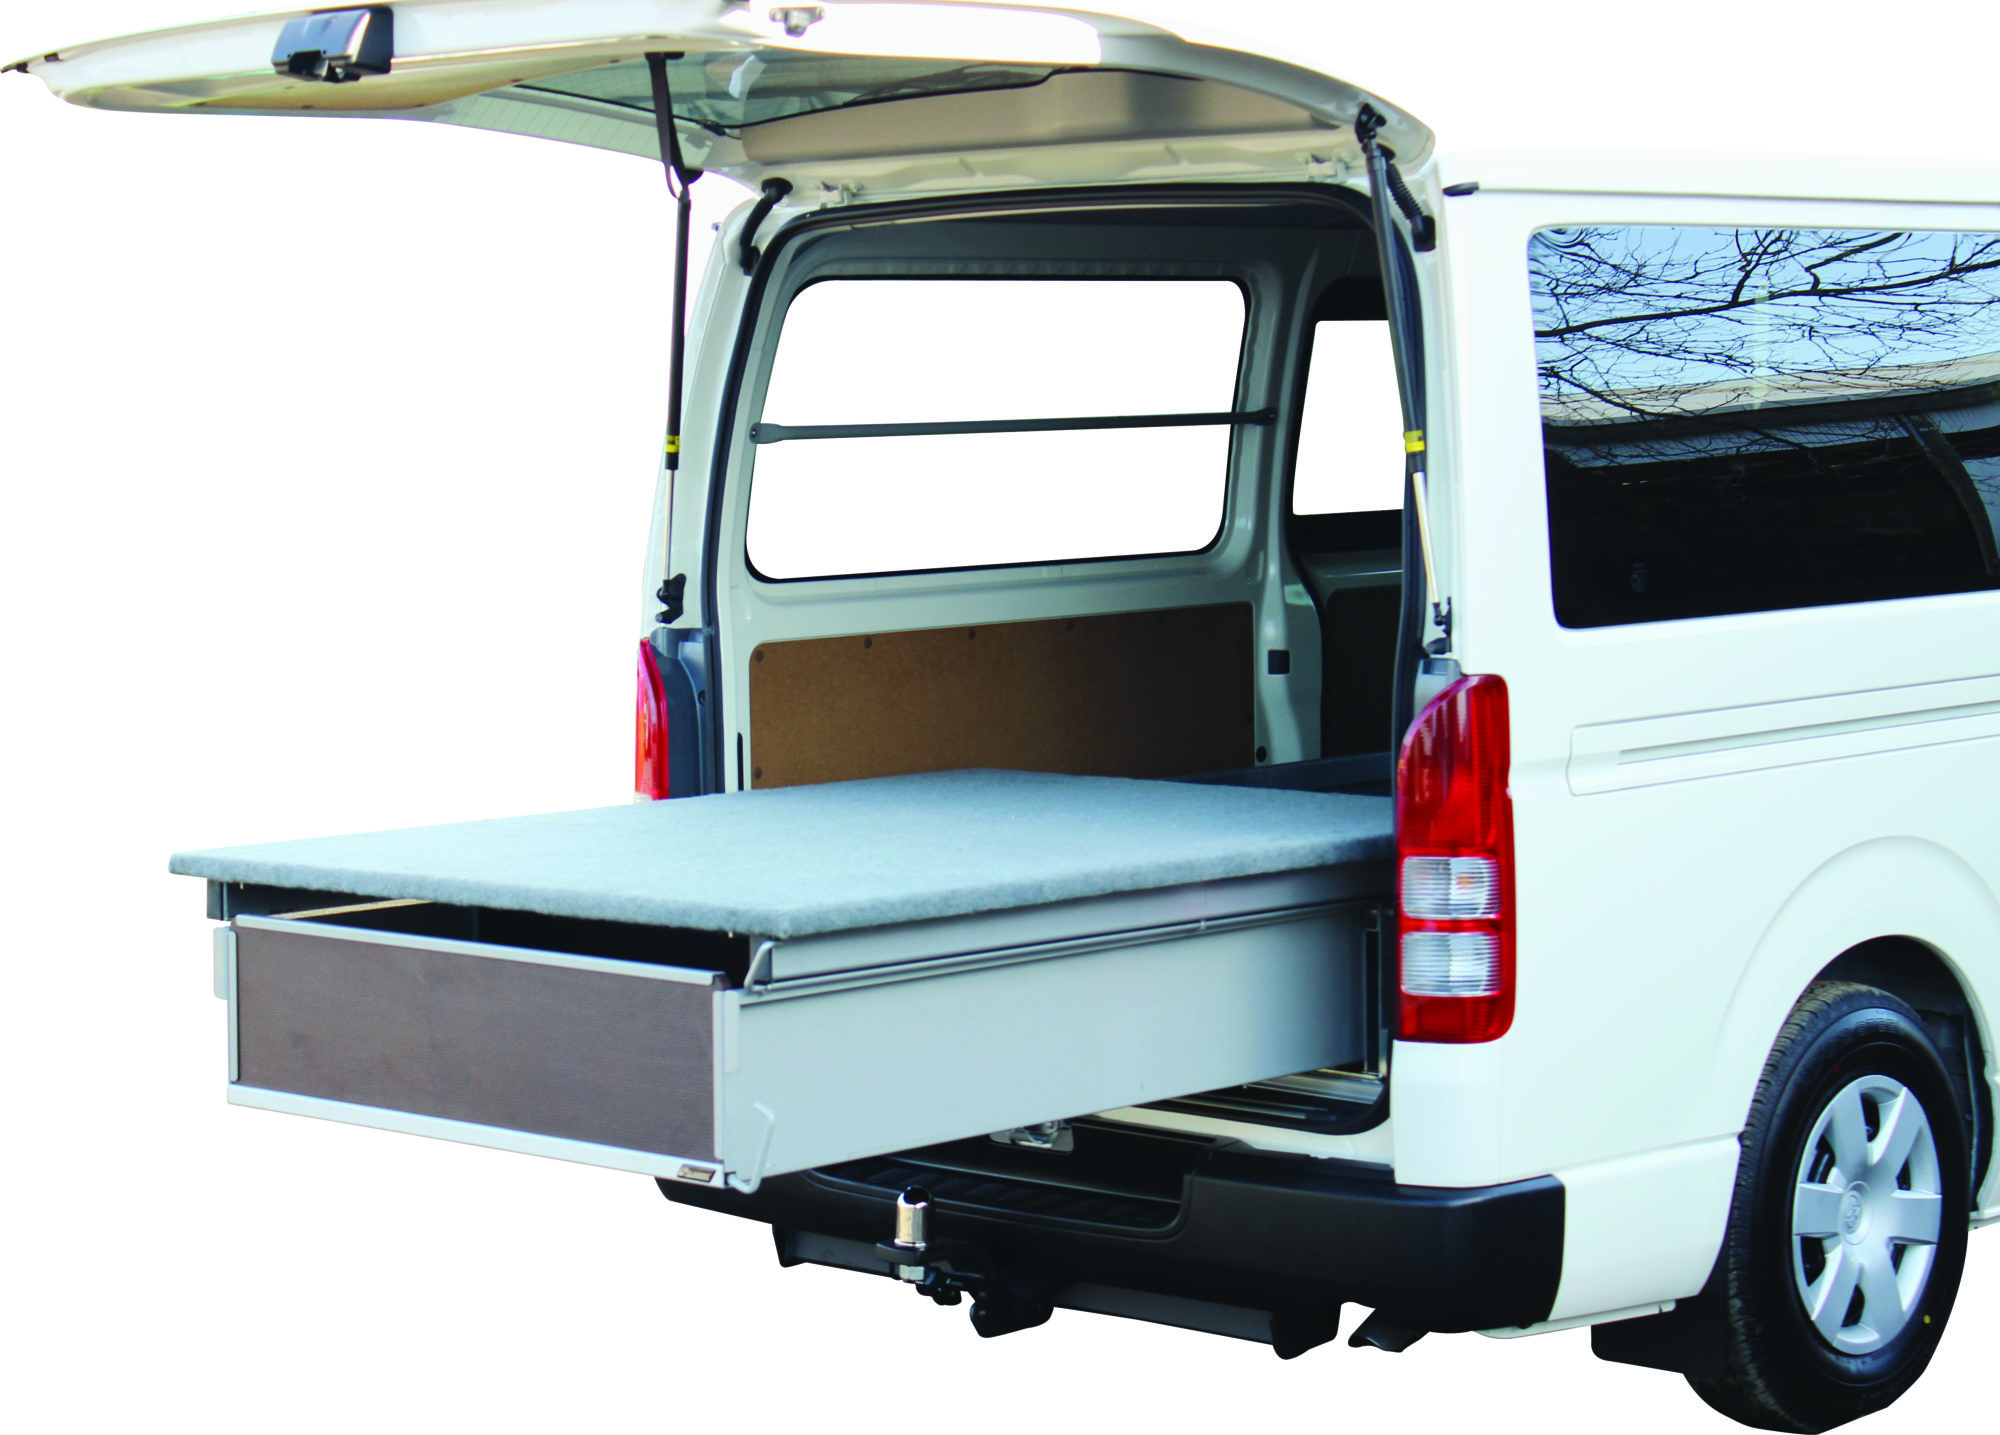 van with table room design in your home u2022 rh travelout co uk van with tail lift hire near me van with tail lift hire london